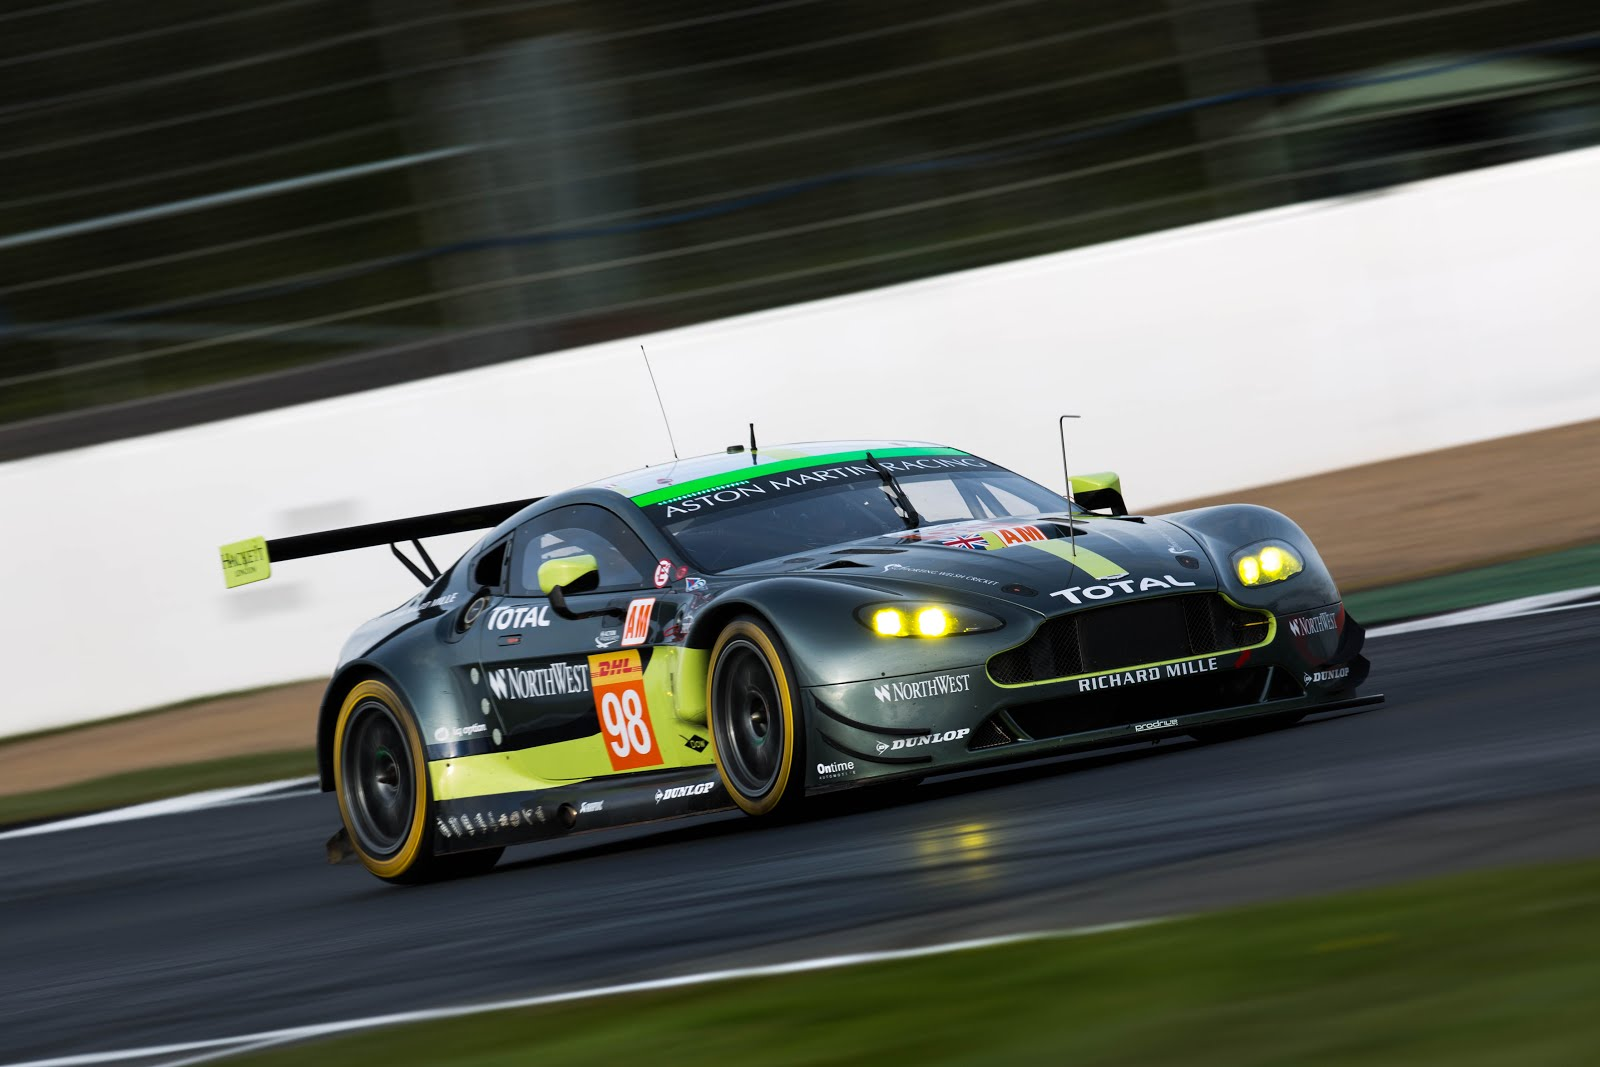 aston martin racing takes gte am podium at 6 hours of silverstone gt le mans. Black Bedroom Furniture Sets. Home Design Ideas